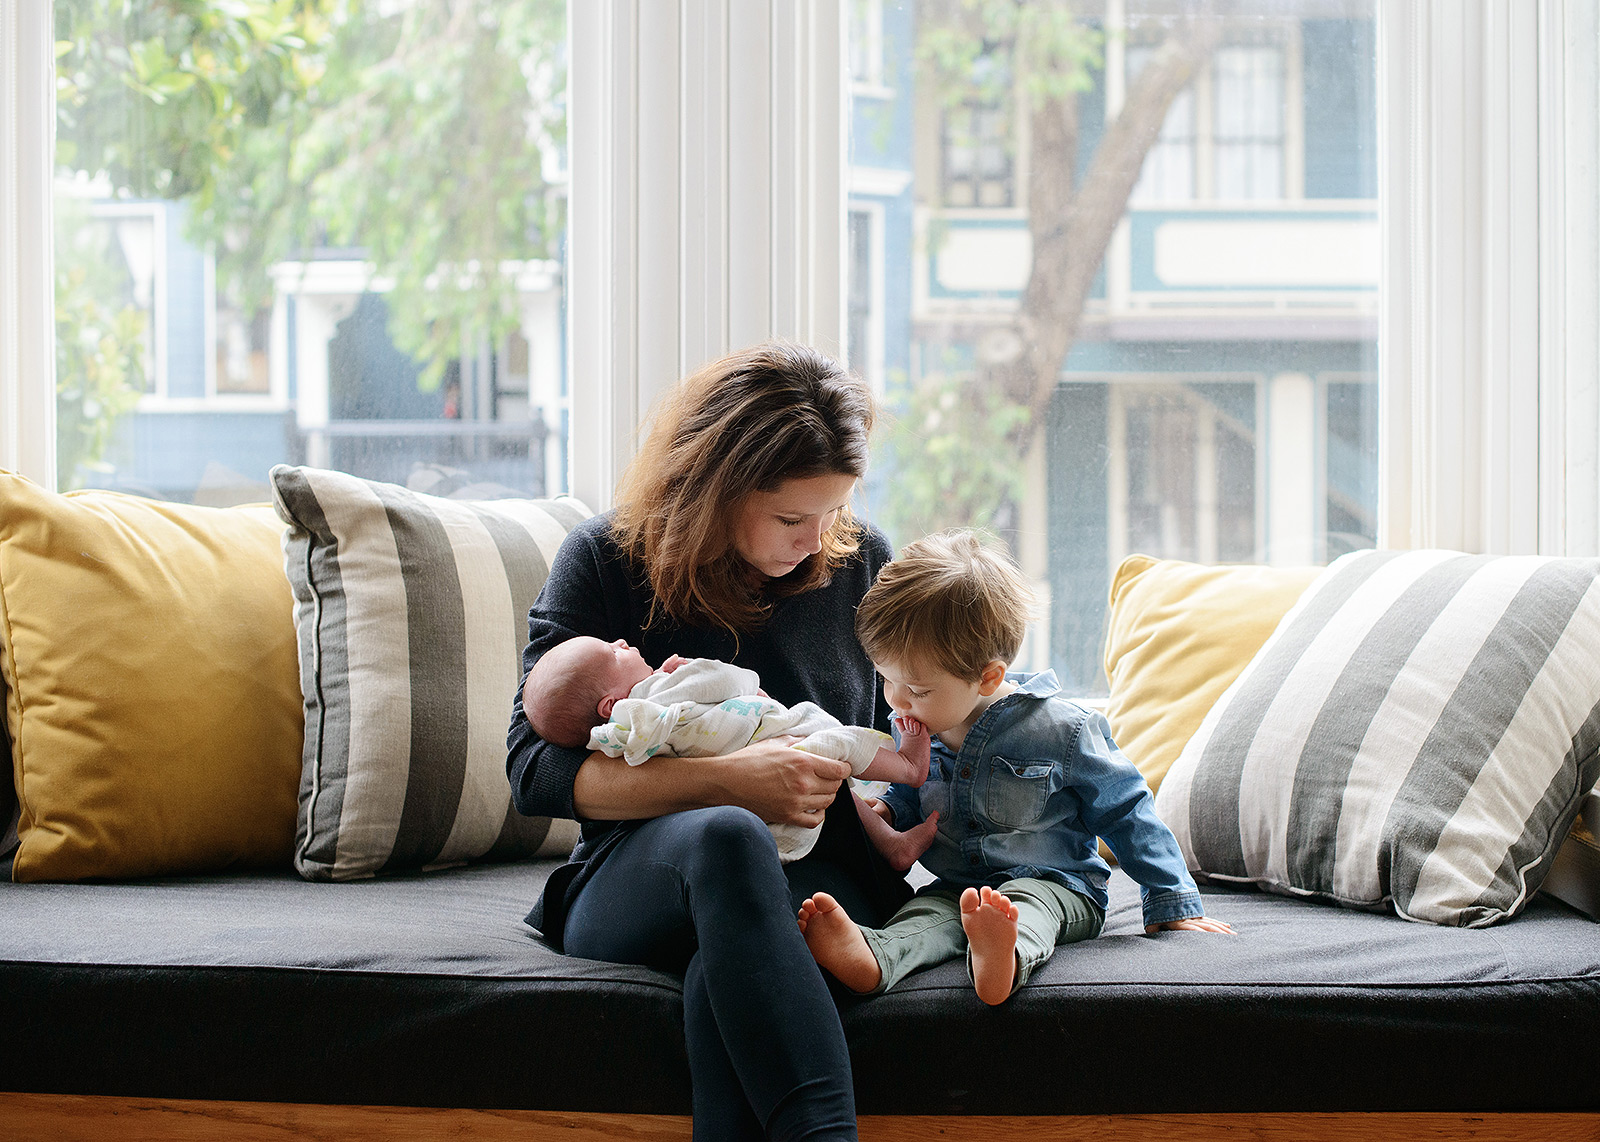 Big Brother Kisses New Baby Sibling's Foot in San Francisco Home